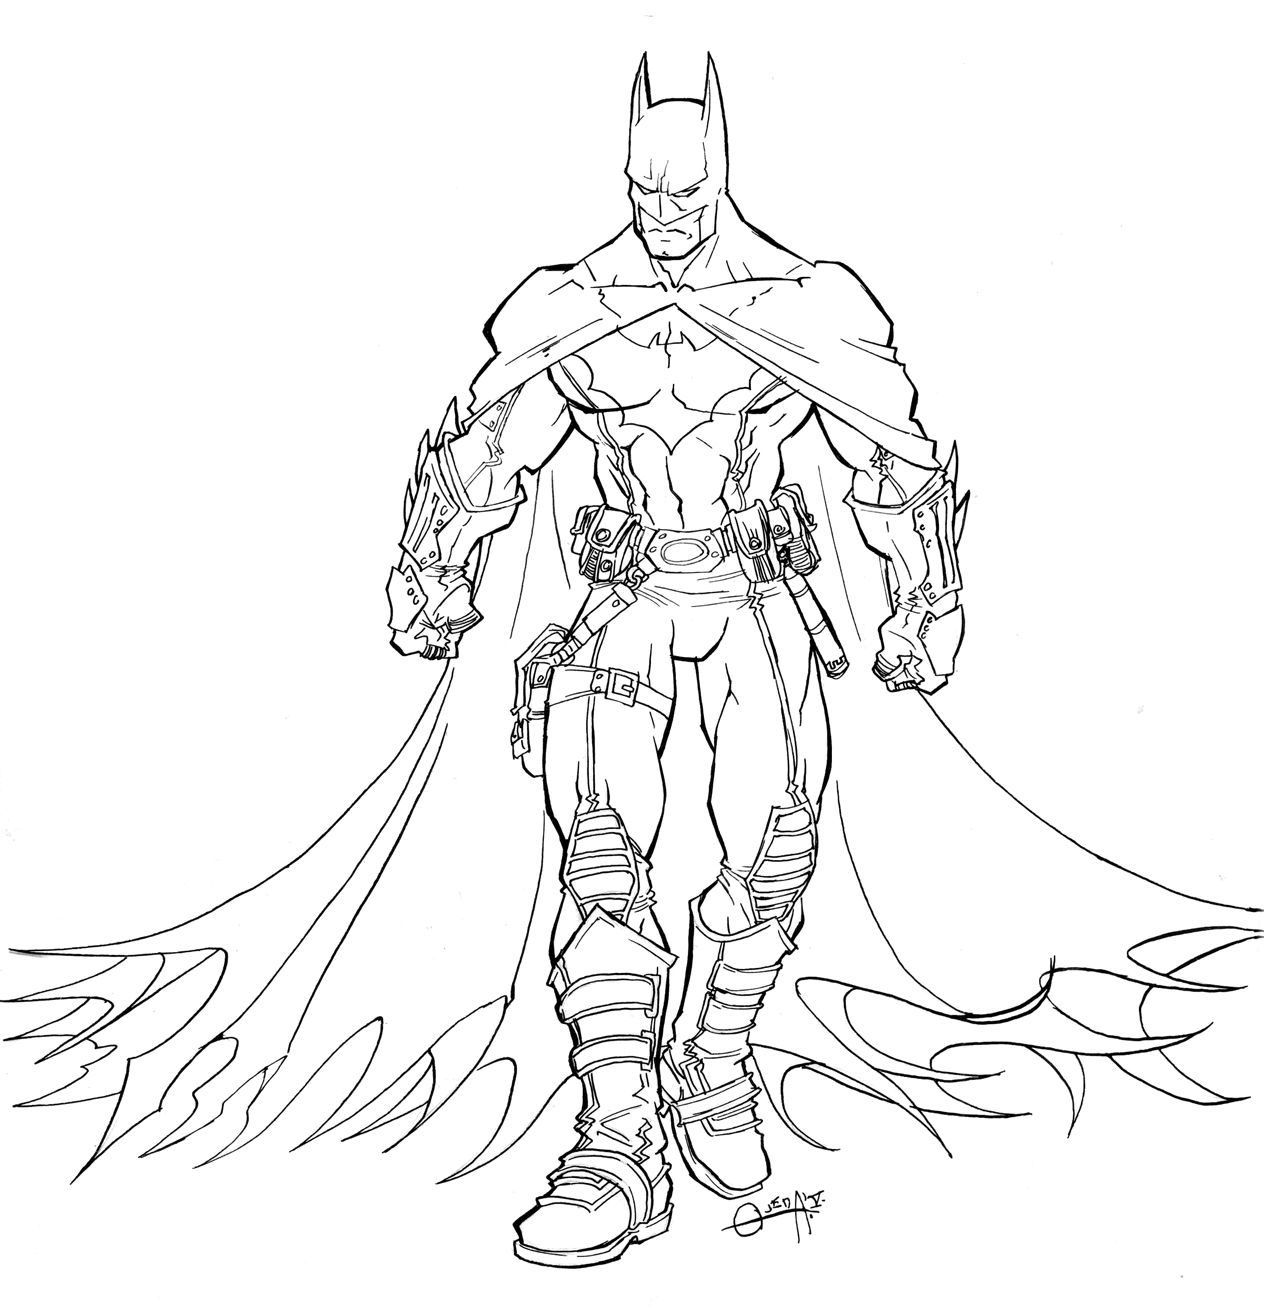 Free Printable Batman Coloring Pages For Kids | Batman, Free ...